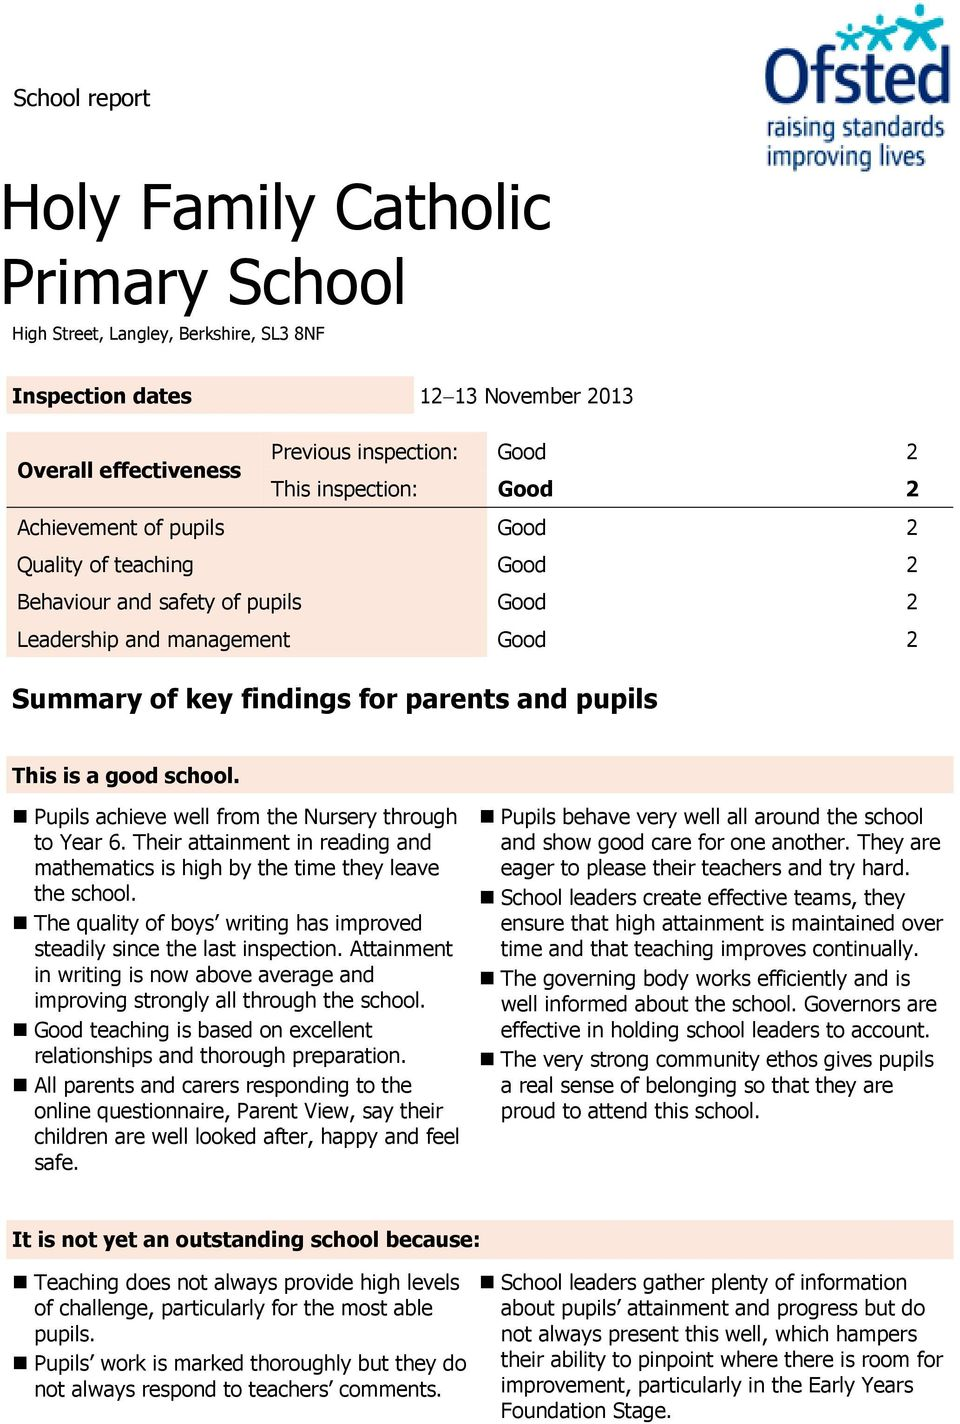 Pupils achieve well from the Nursery through to Year 6. Their attainment in reading and mathematics is high by the time they leave the school.